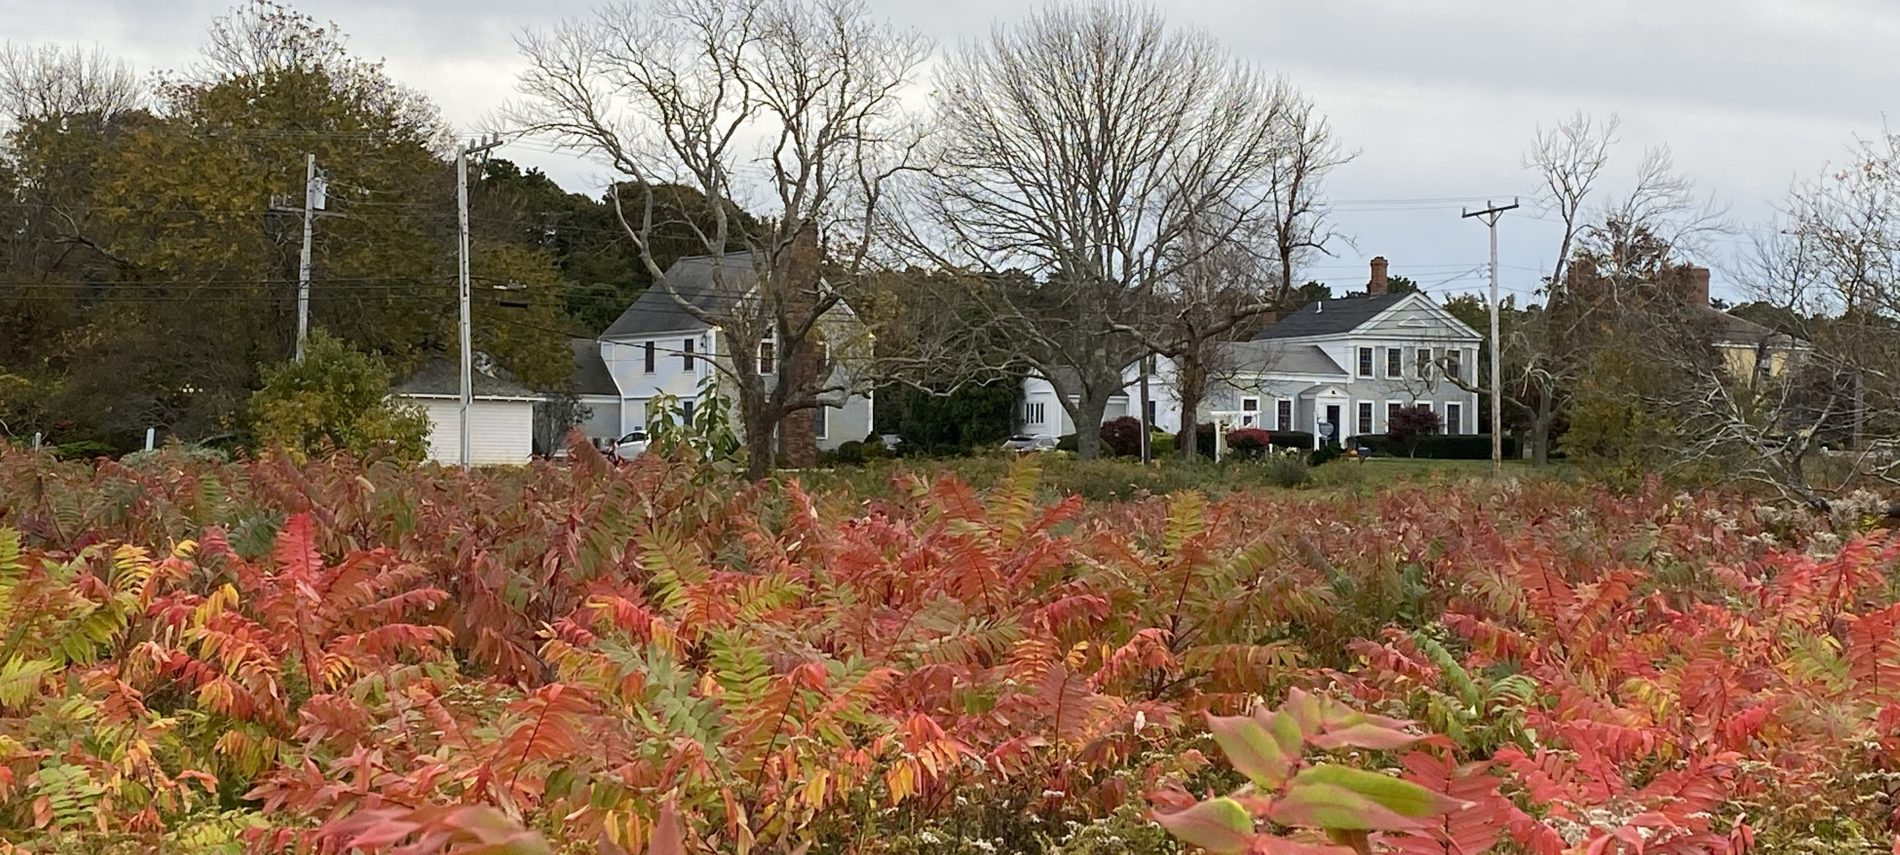 Looking through a field during the fall at Brewster By The Sea Inn